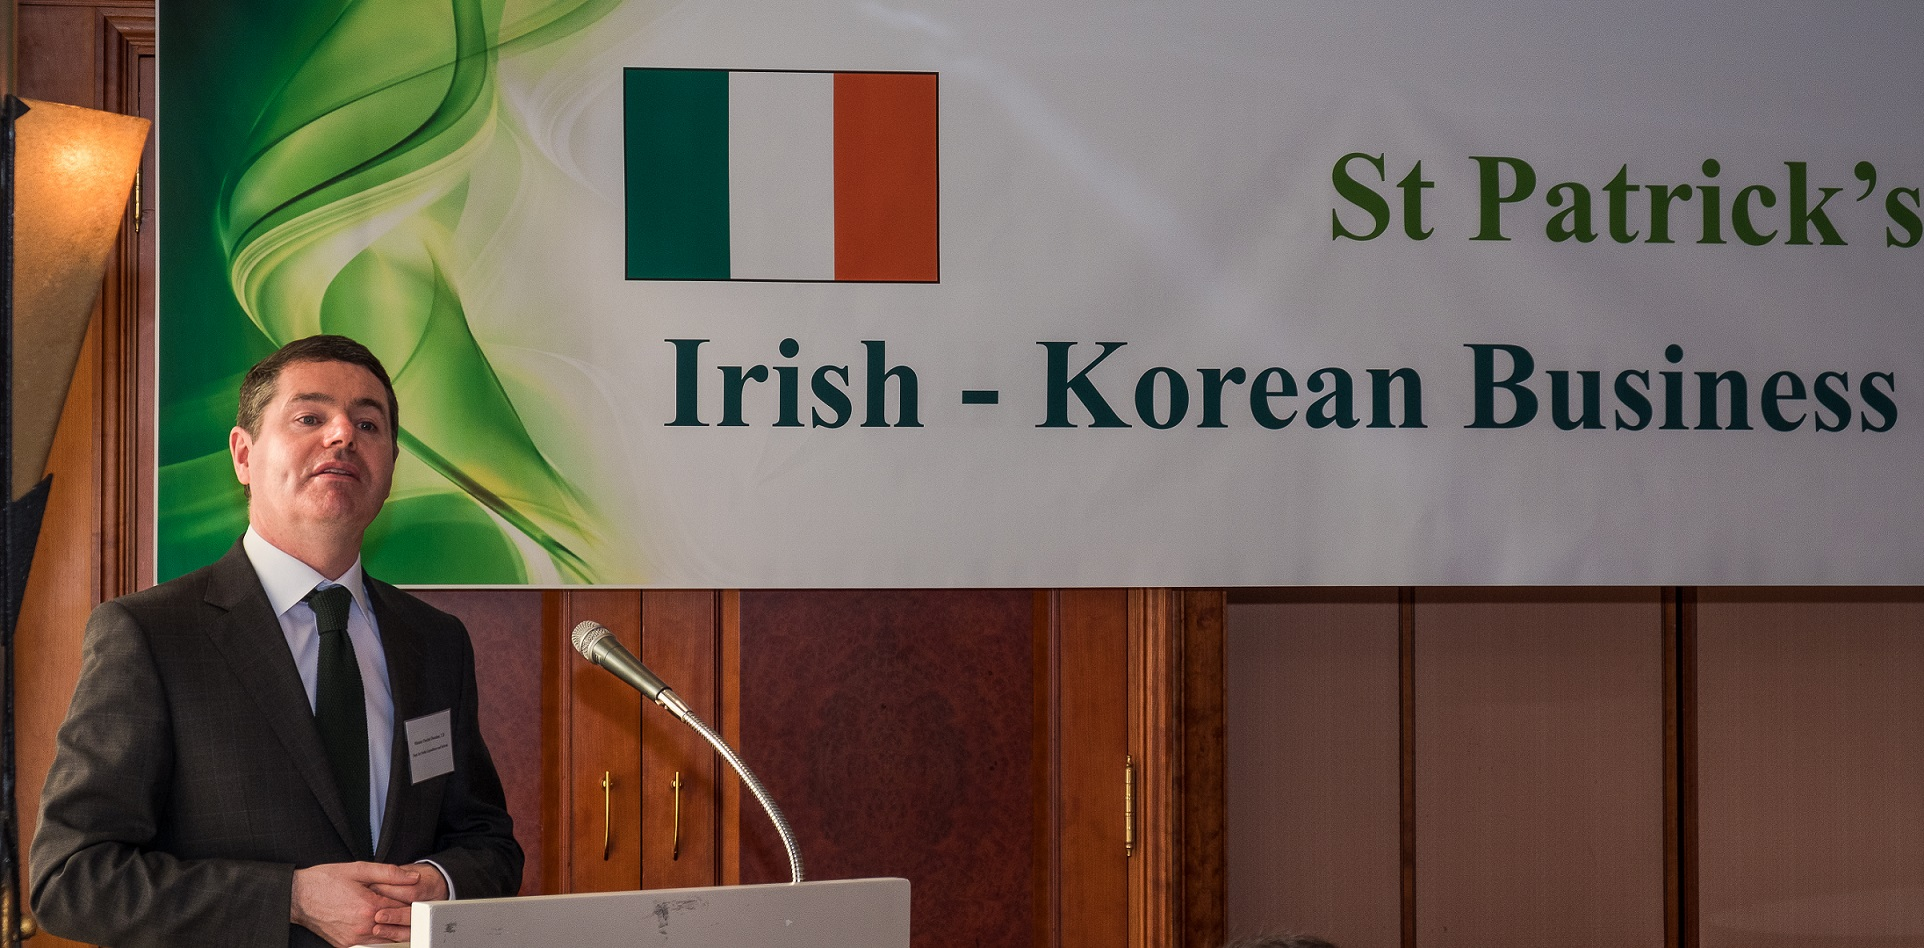 Irish Minister Paschal Donohoe speaks to attendees of a business networking breakfast that brings together Korean and Irish businesspeople on March 14, 2017.